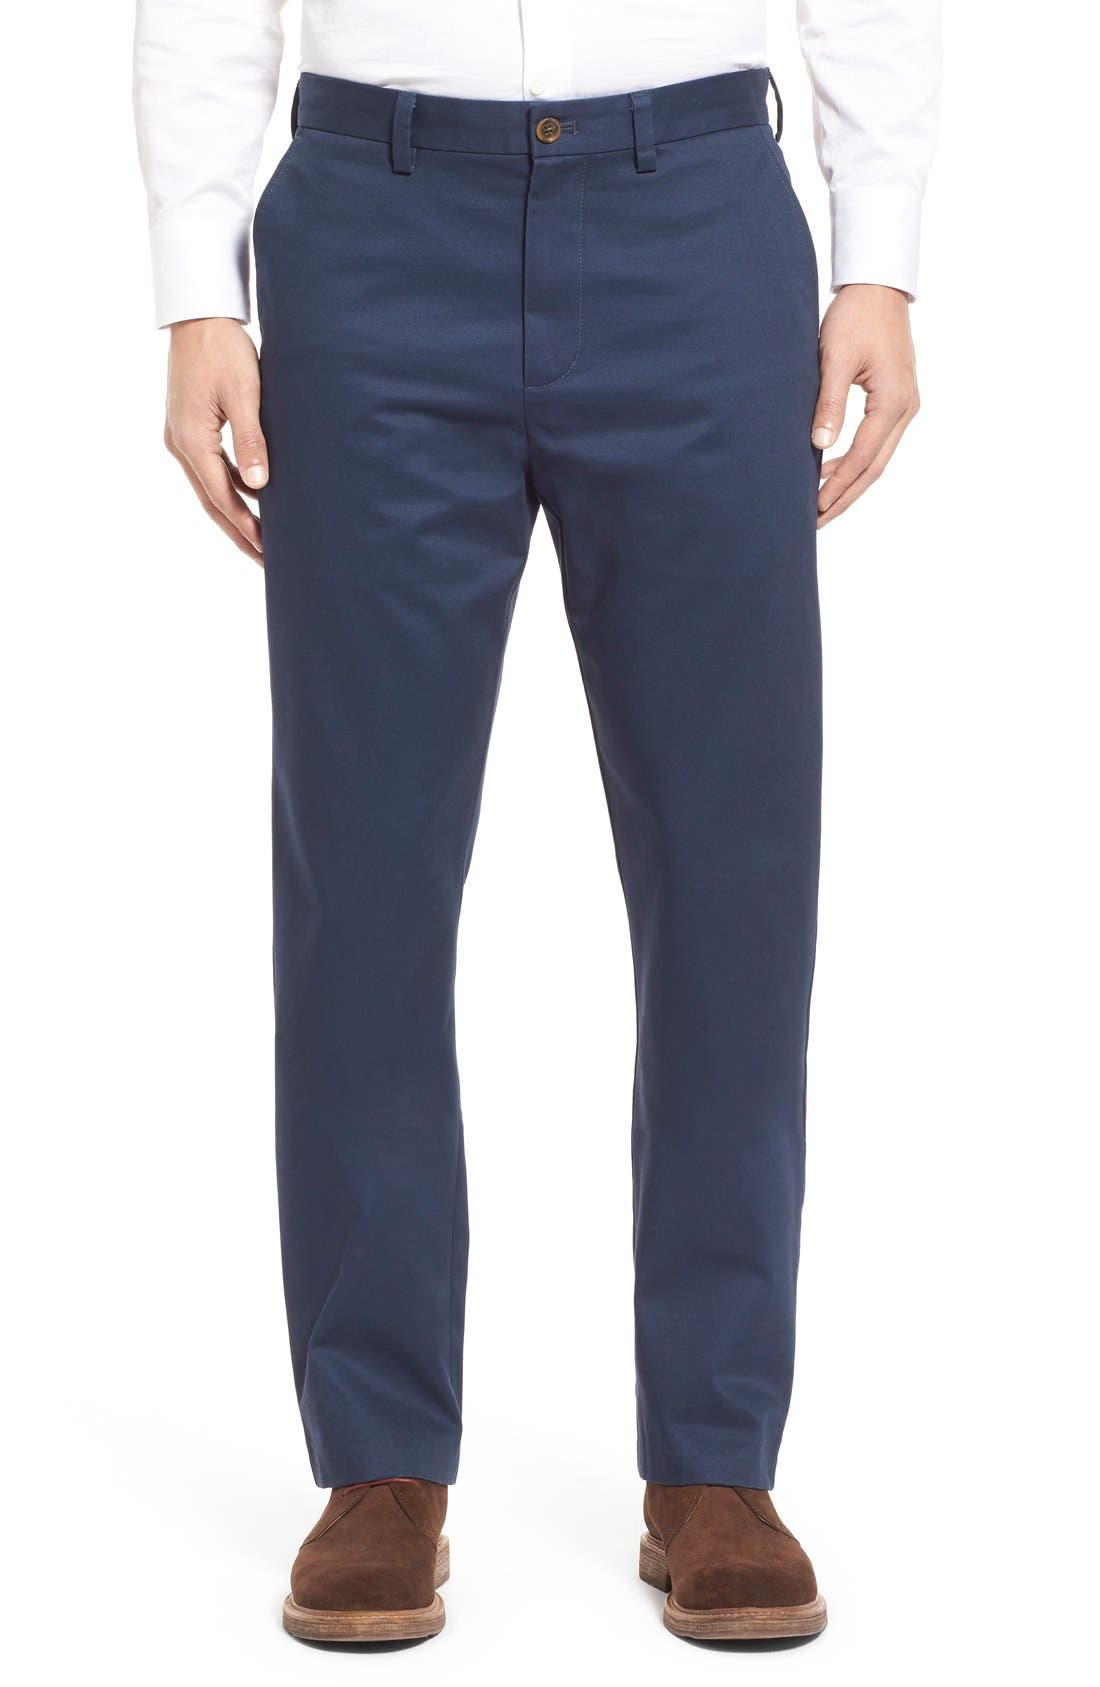 Alternate Image 1 Selected - Nordstrom Men's Shop Wrinkle Free Straight Leg Chinos